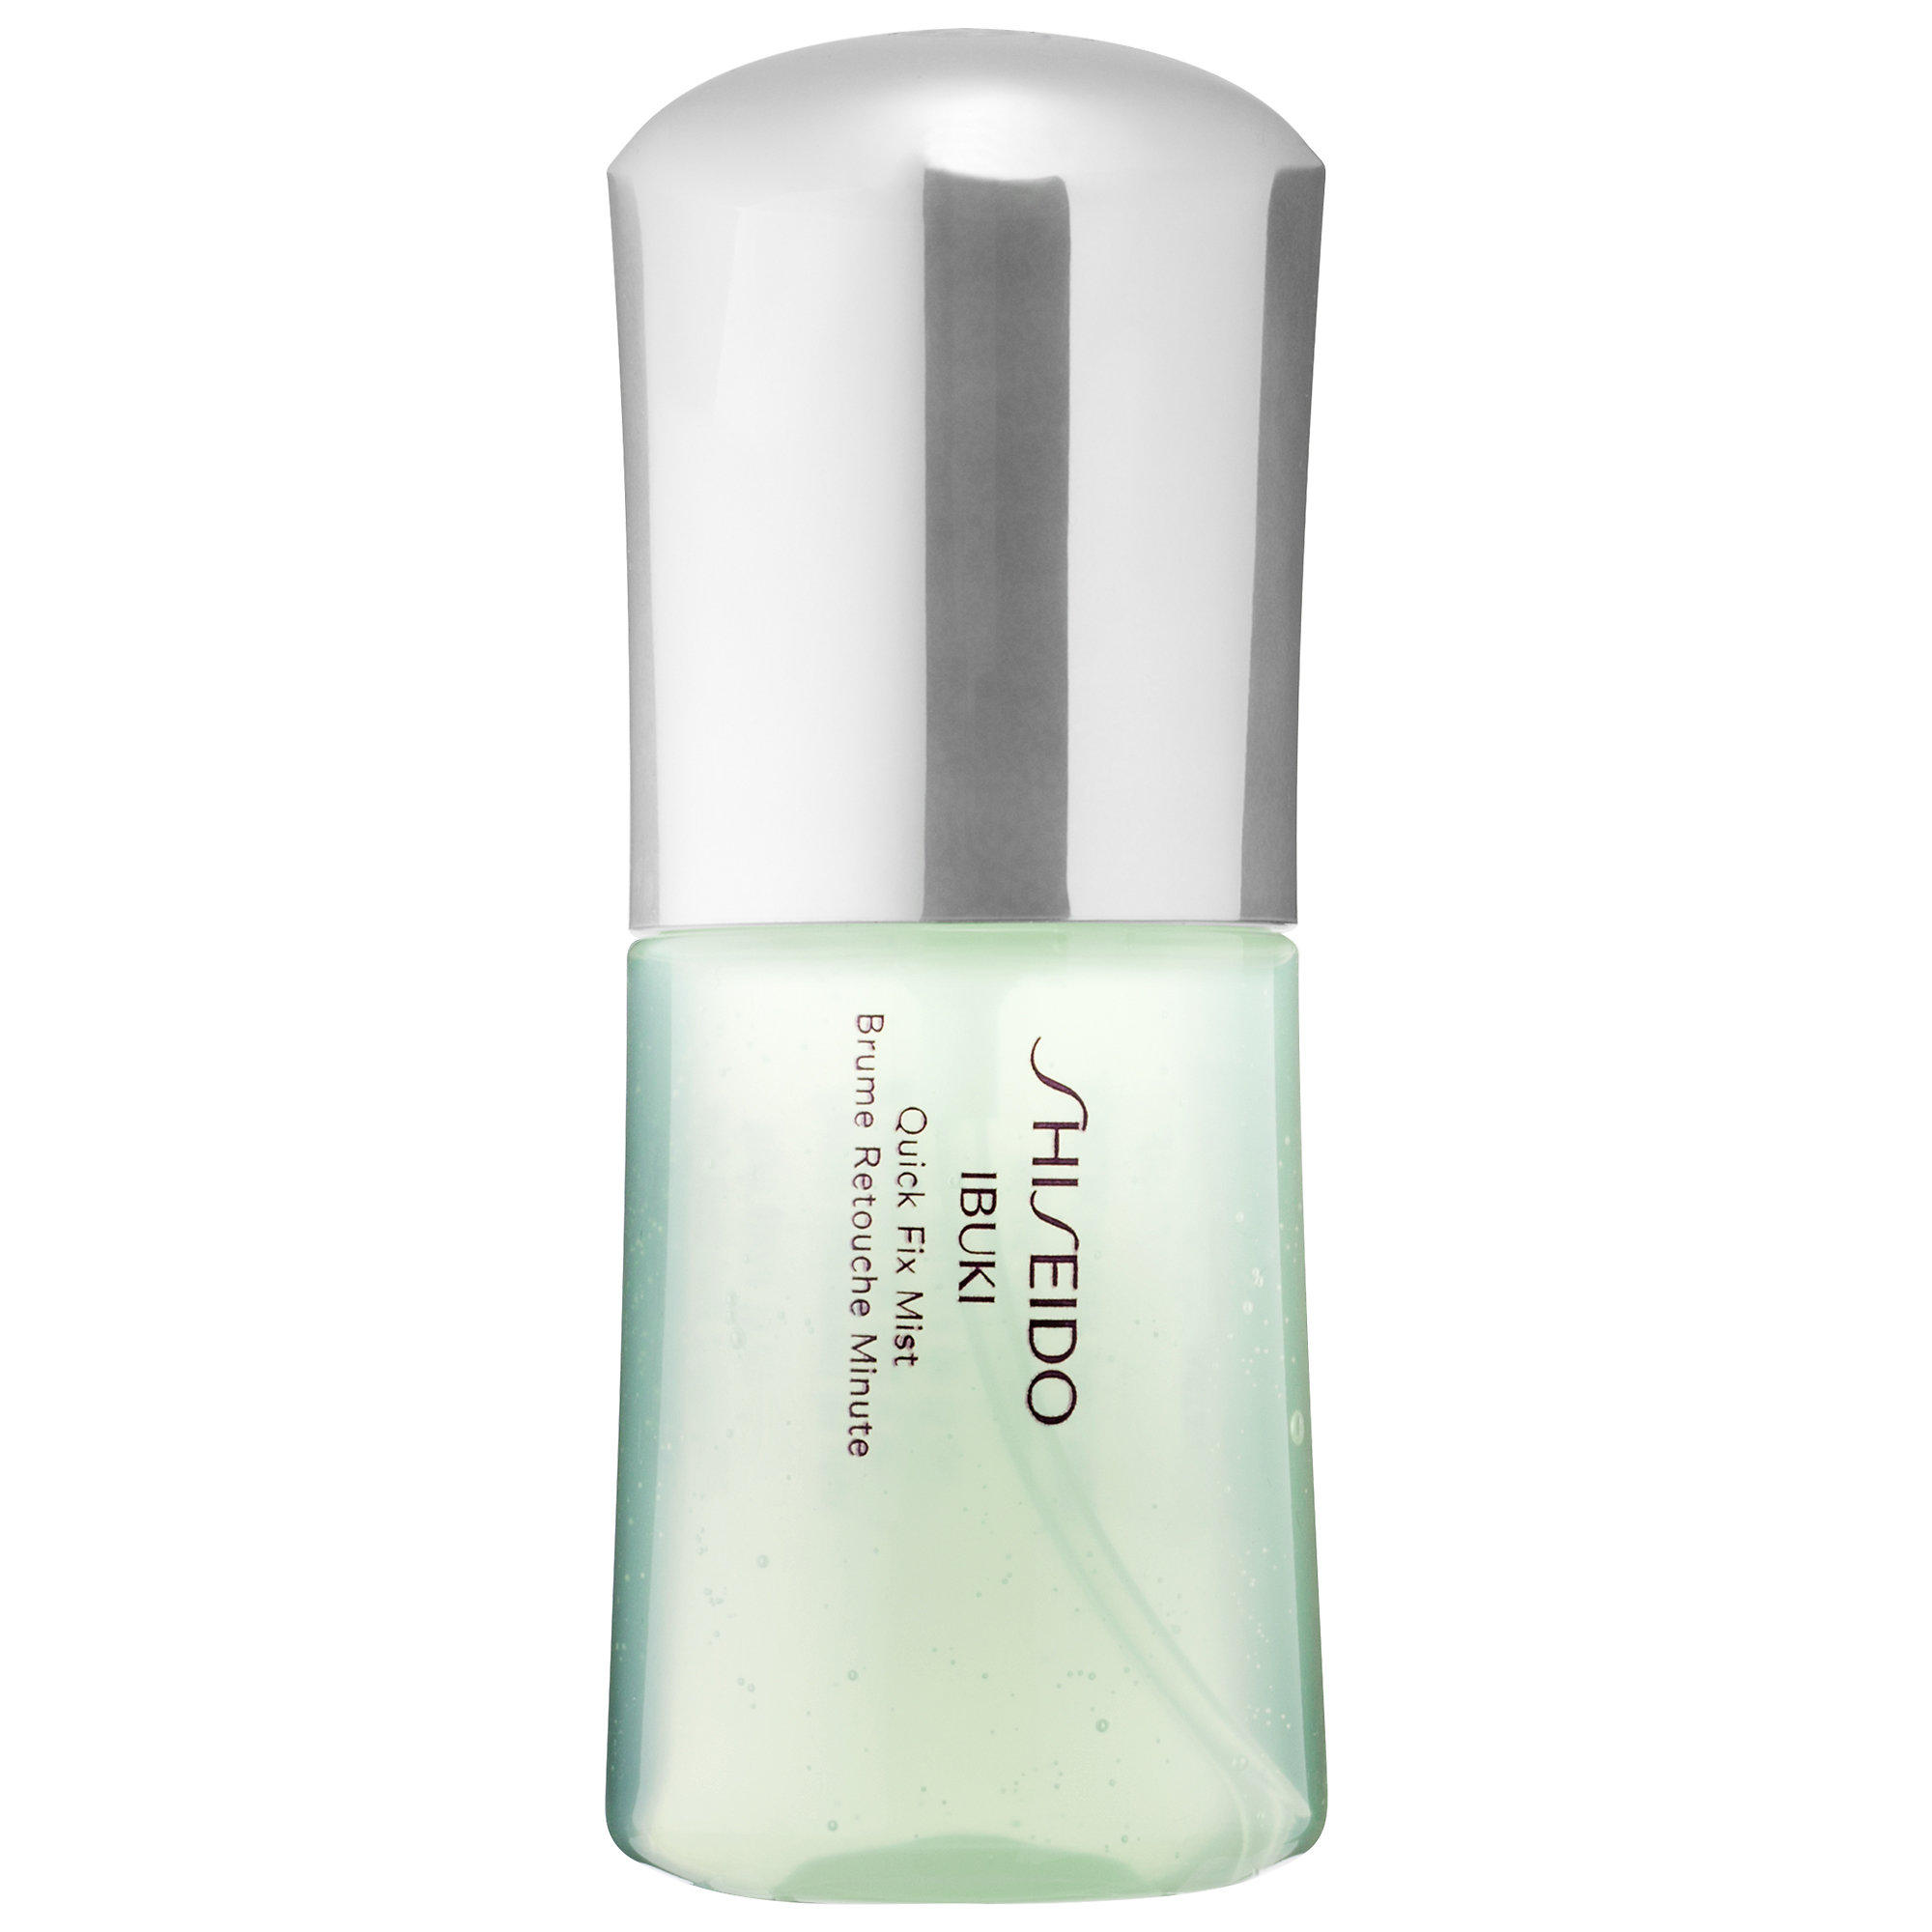 New Release Shiseido launched new Ibuki Quick Fix Mist